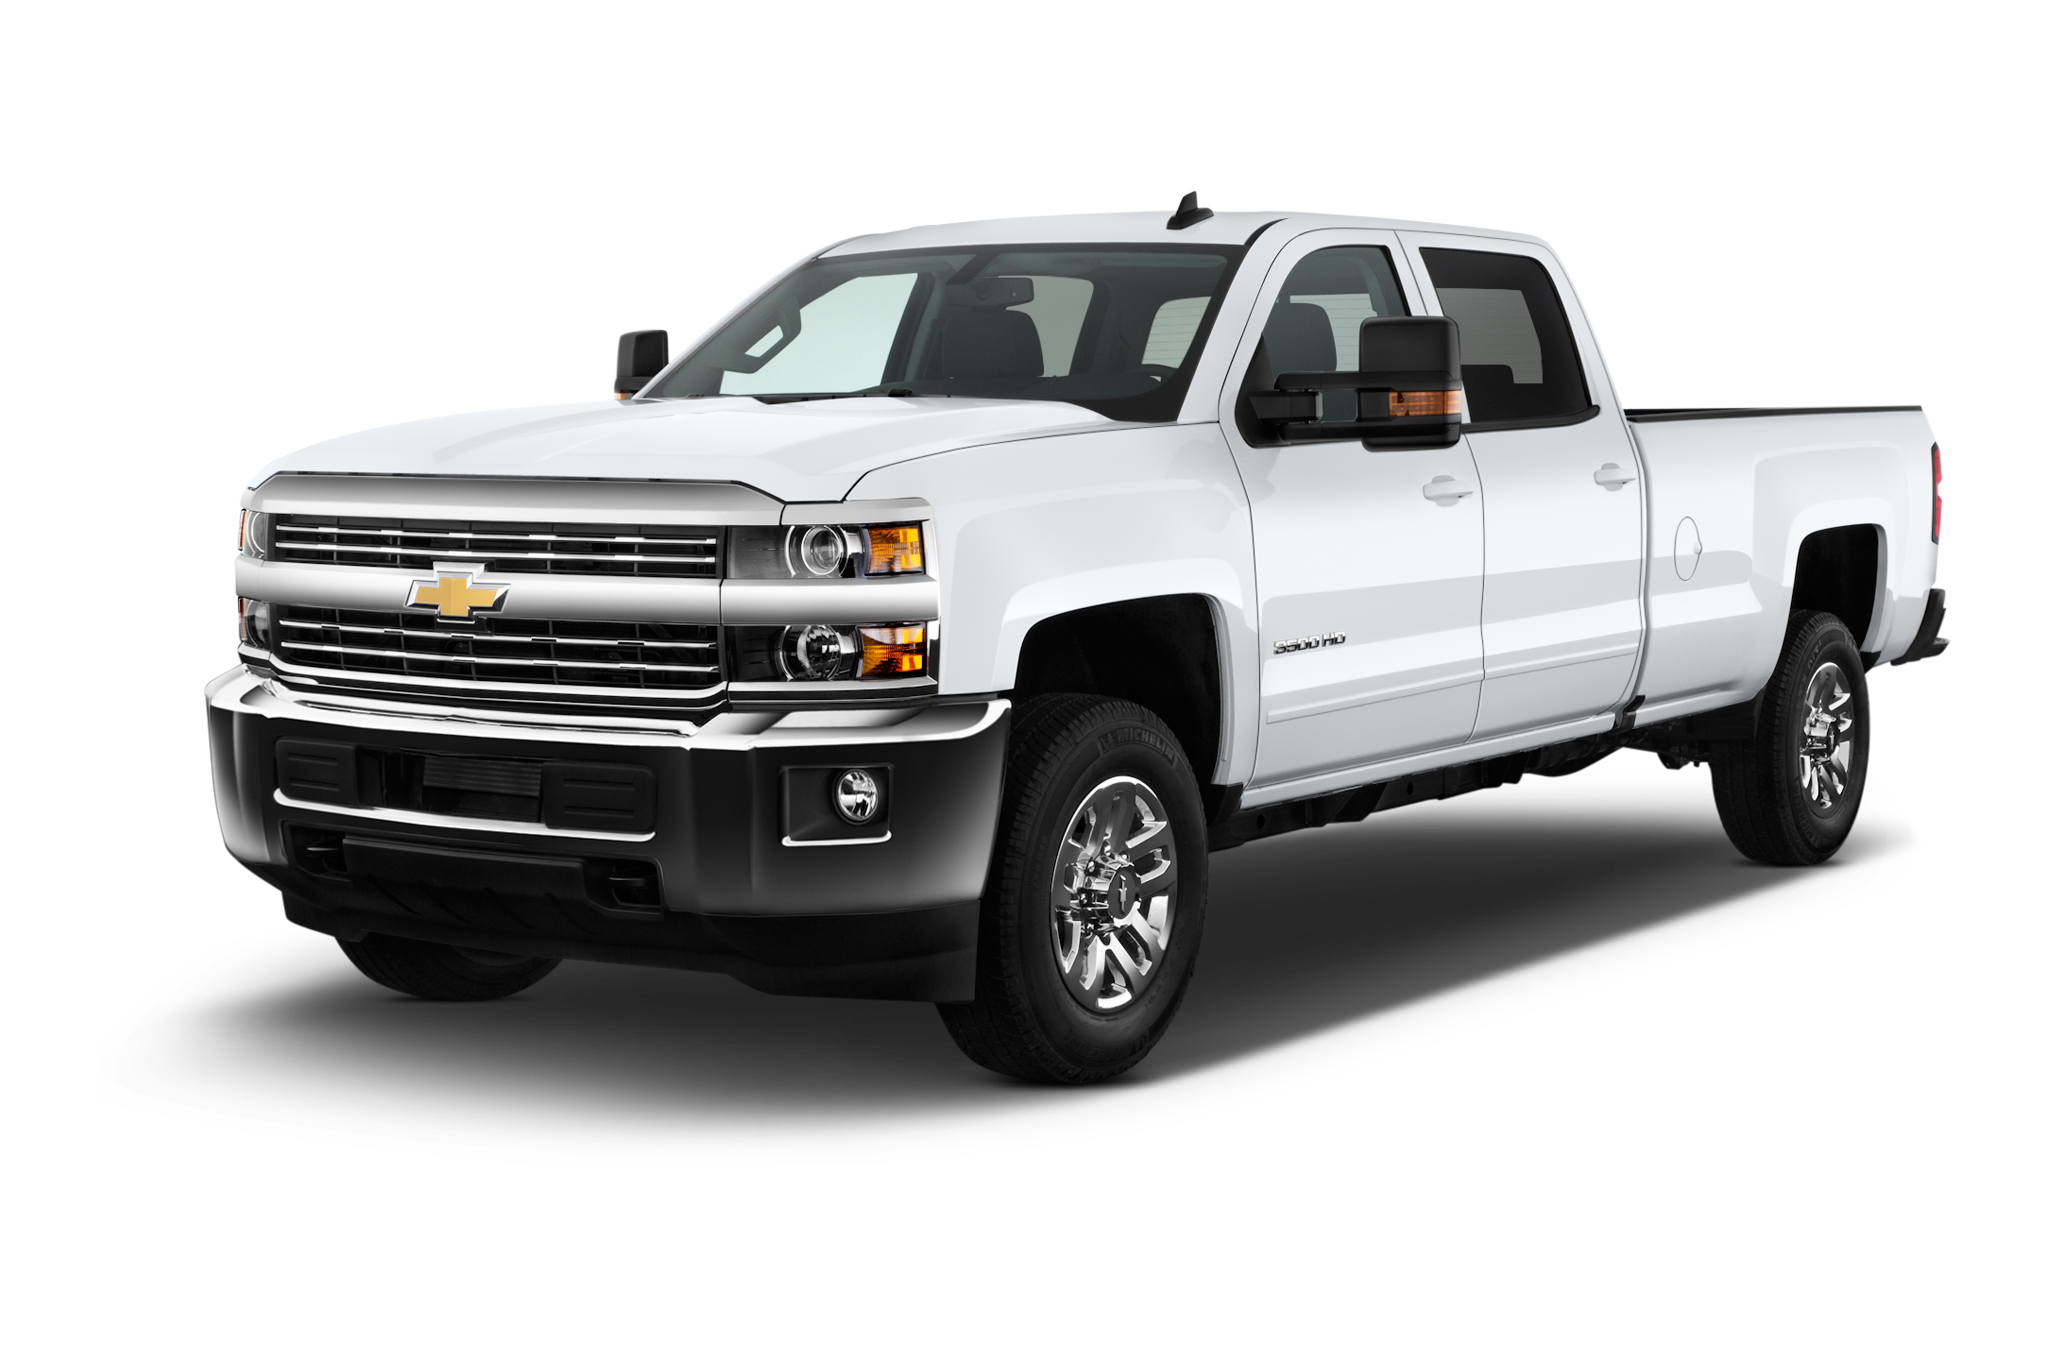 2017 chevrolet silverado 3500hd ltz 4wd crew cab standard box srw specs and features msn autos. Black Bedroom Furniture Sets. Home Design Ideas